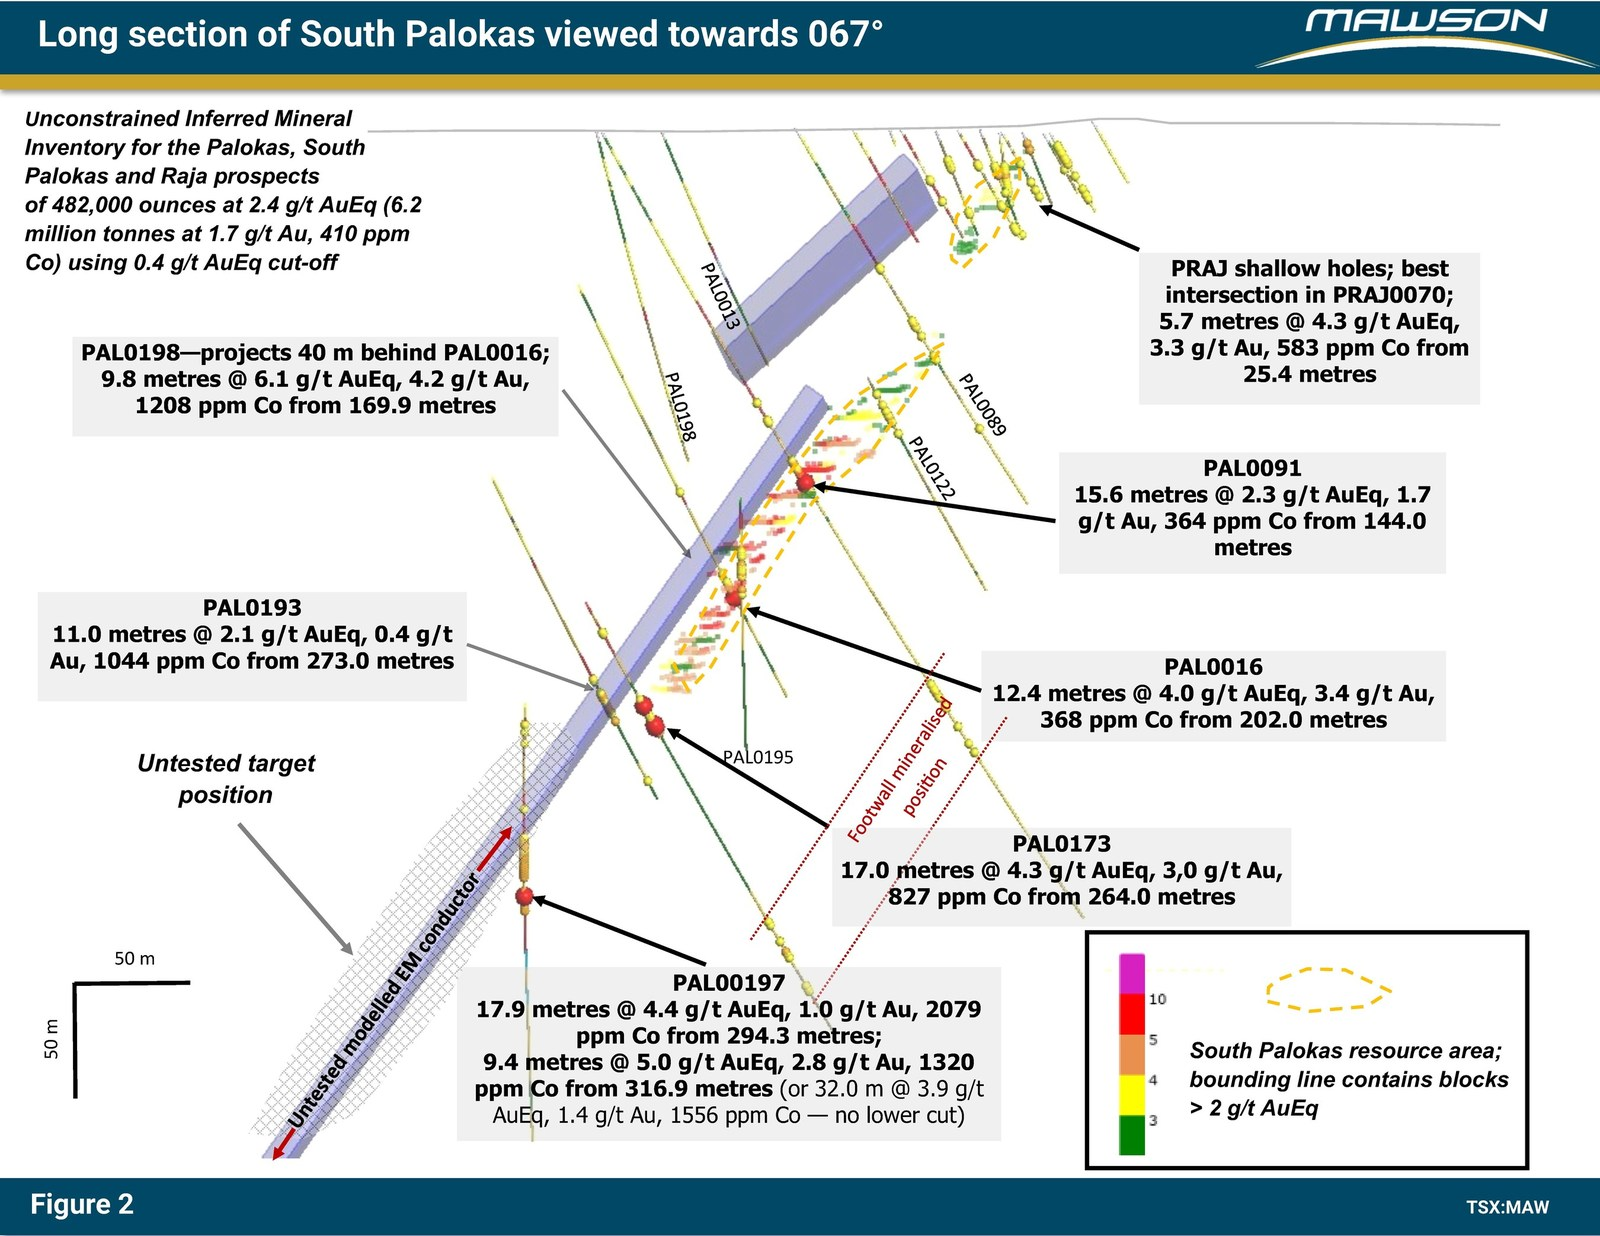 Figure 2: Longitudinal section at South Palokas prospect showing the considerable area to be tested with future drill programs. The view is towards 063 degrees. The outlines of the high-grade resources are shown along with the modelled TEM plates. See Figure 1 for plan view location of the section.